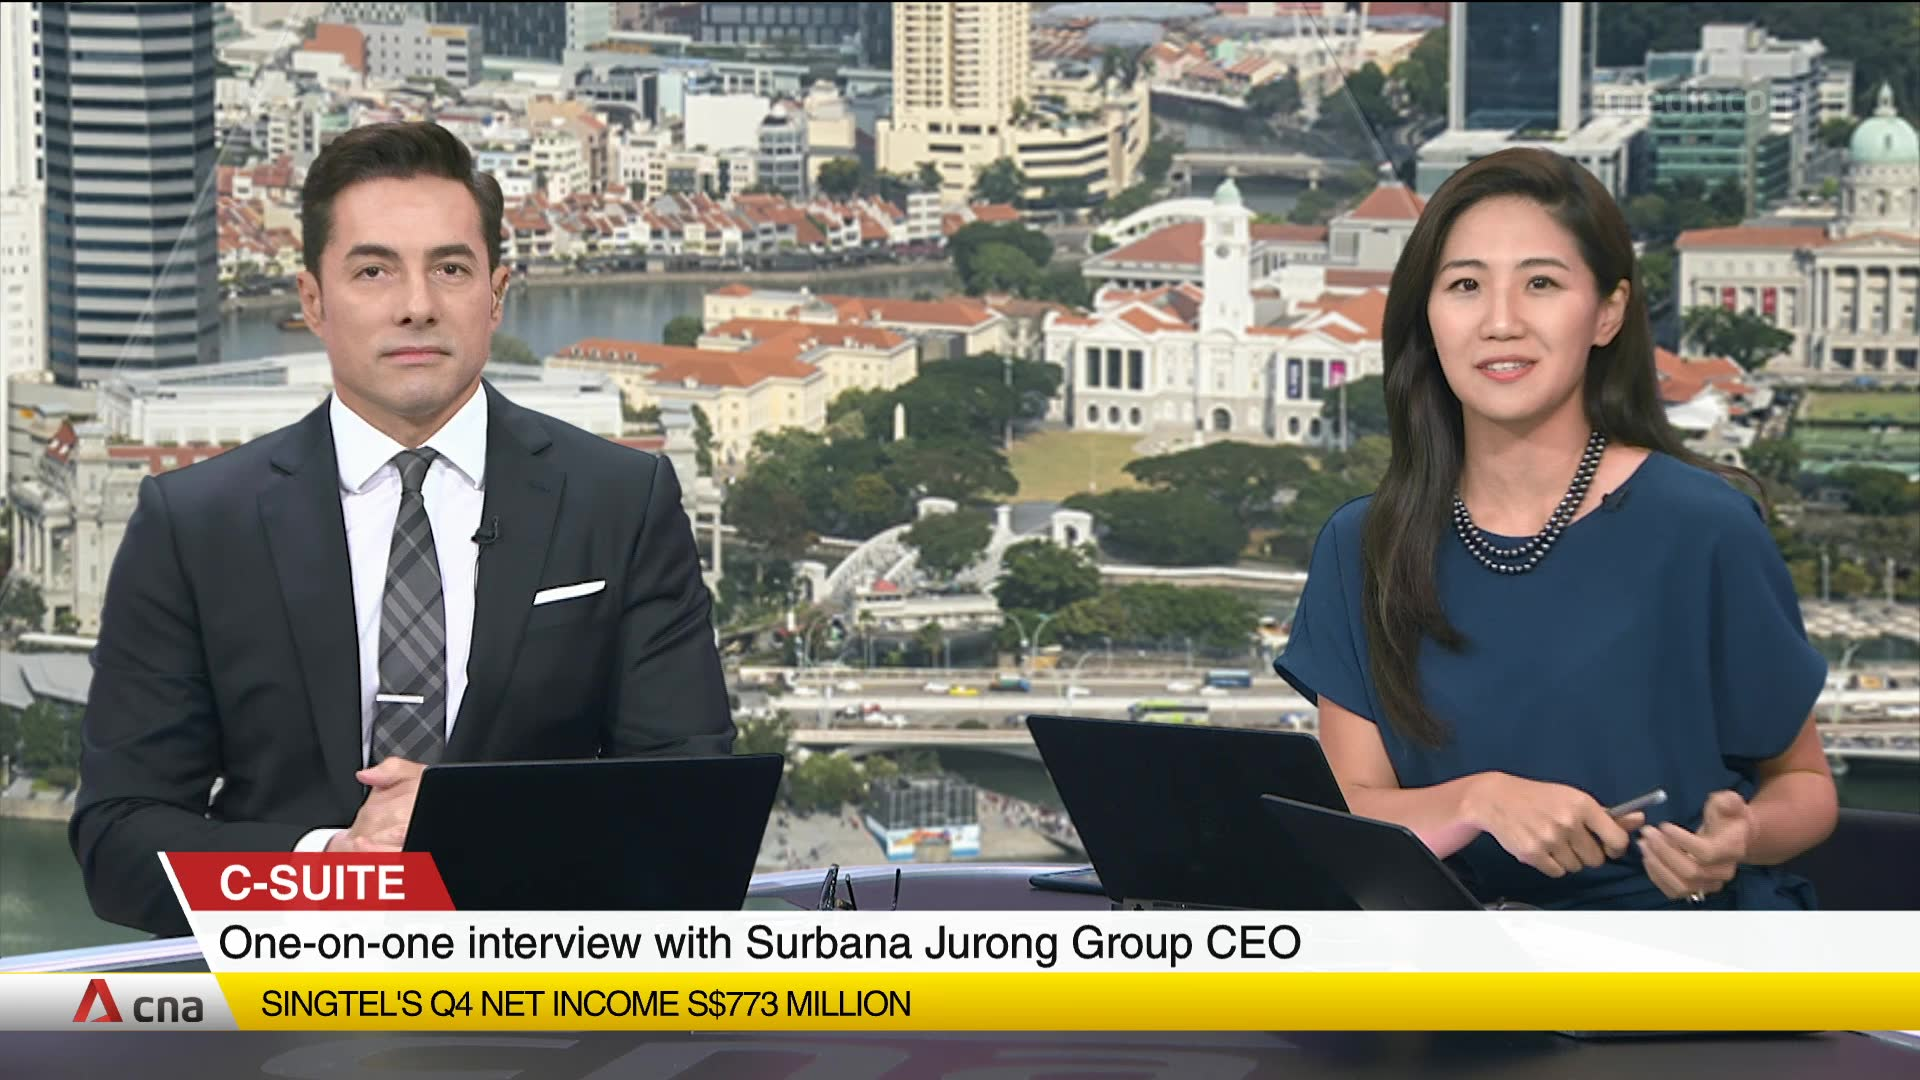 C-Suite: Wong Heang Fine, Surbana Jurong Group CEO